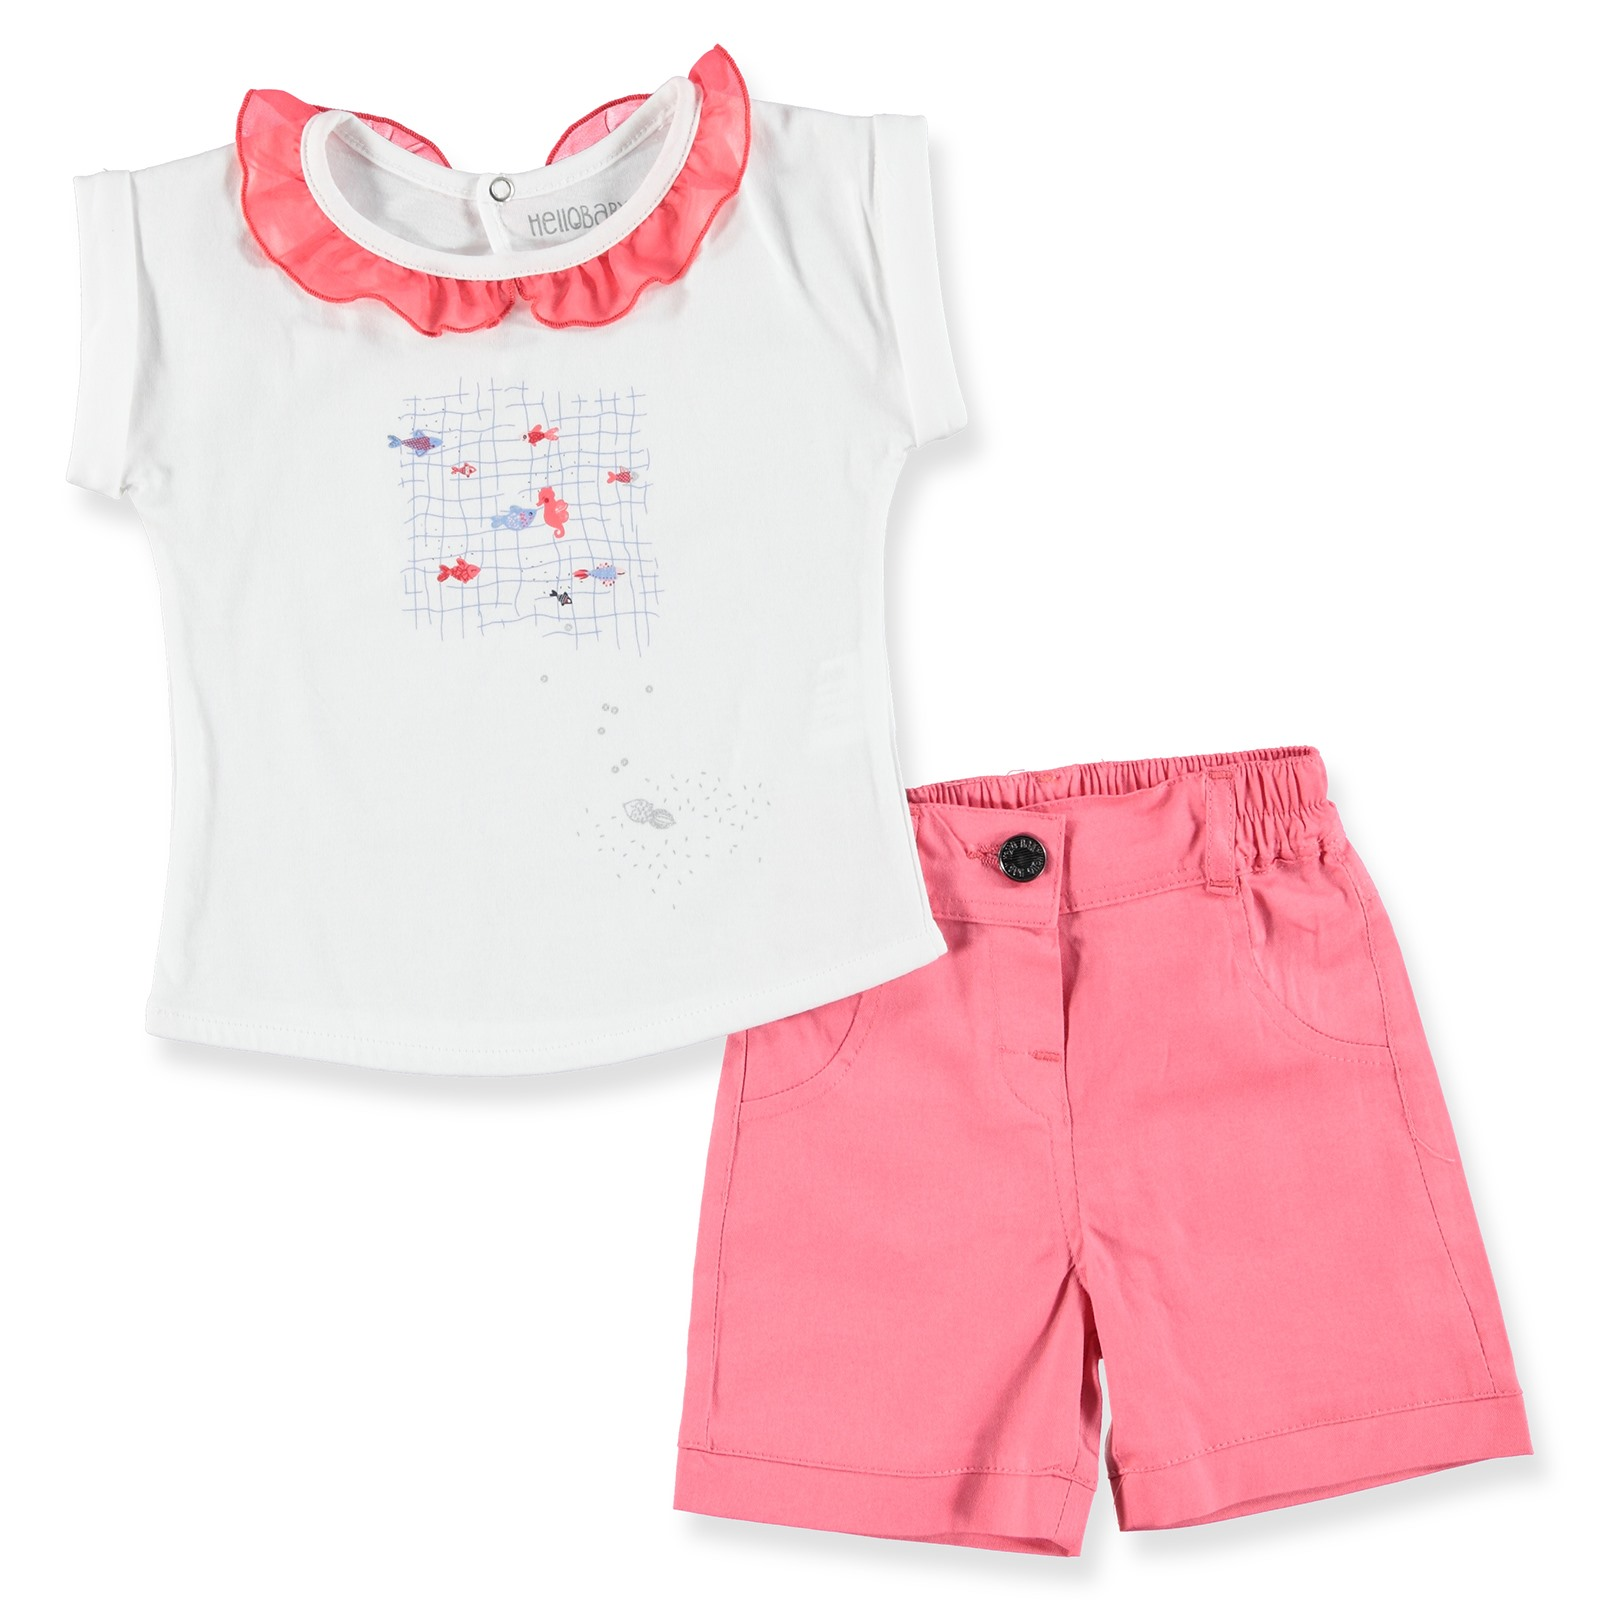 HelloBaby Fish Theme Baby Tshirt Short Set